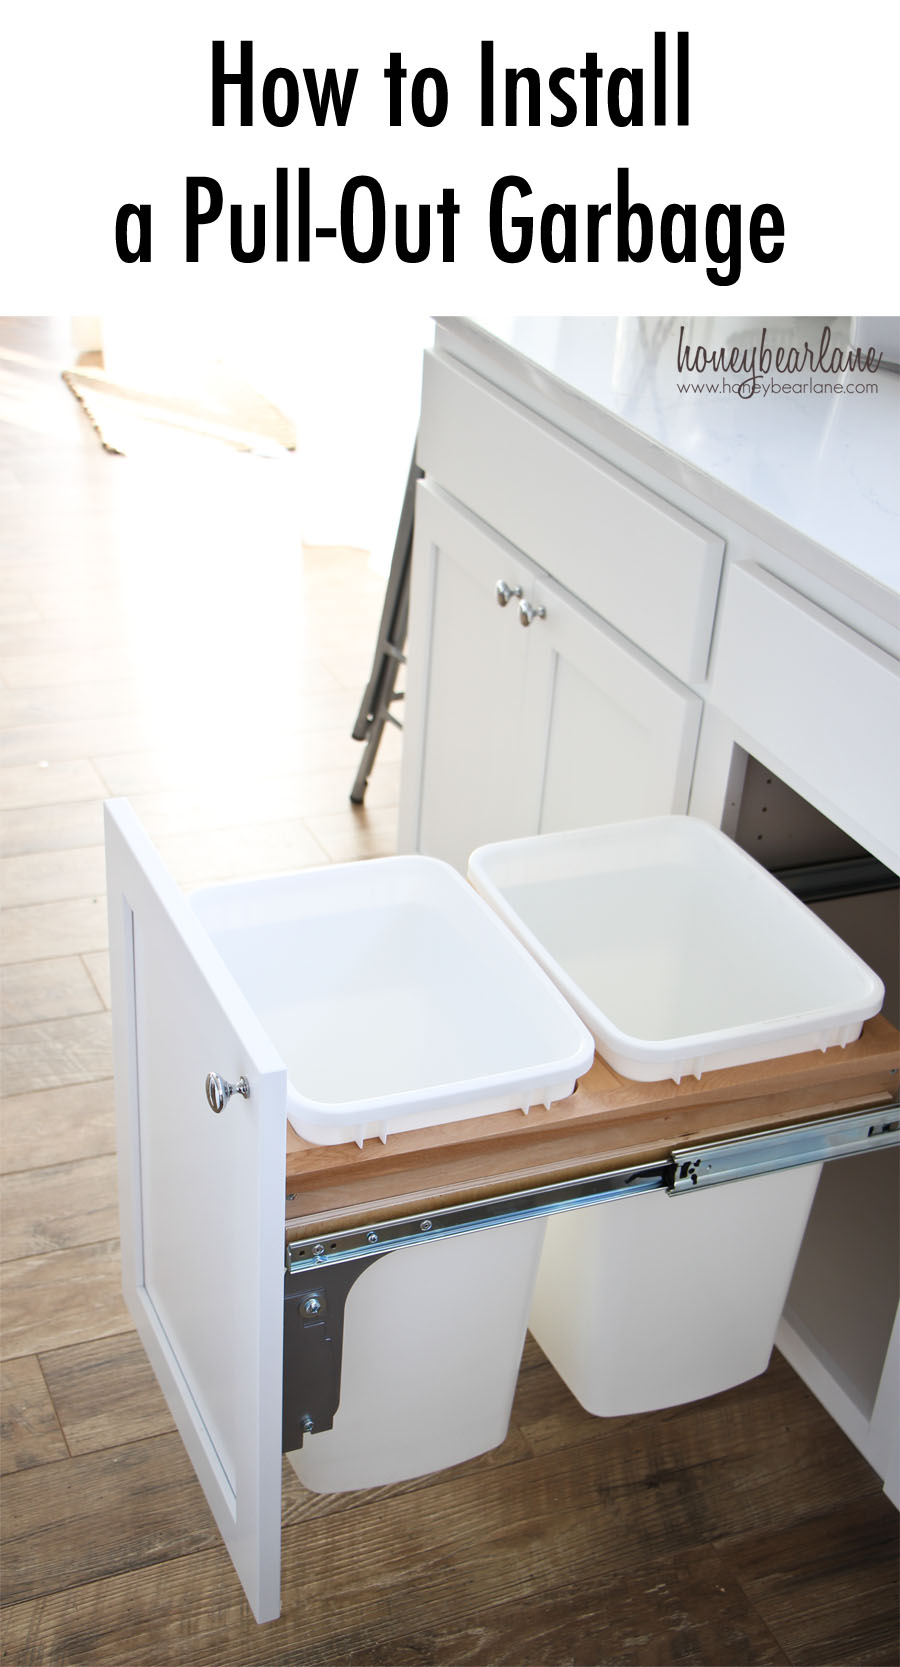 How to Install a Pull-out Garbage - Honeybear Lane